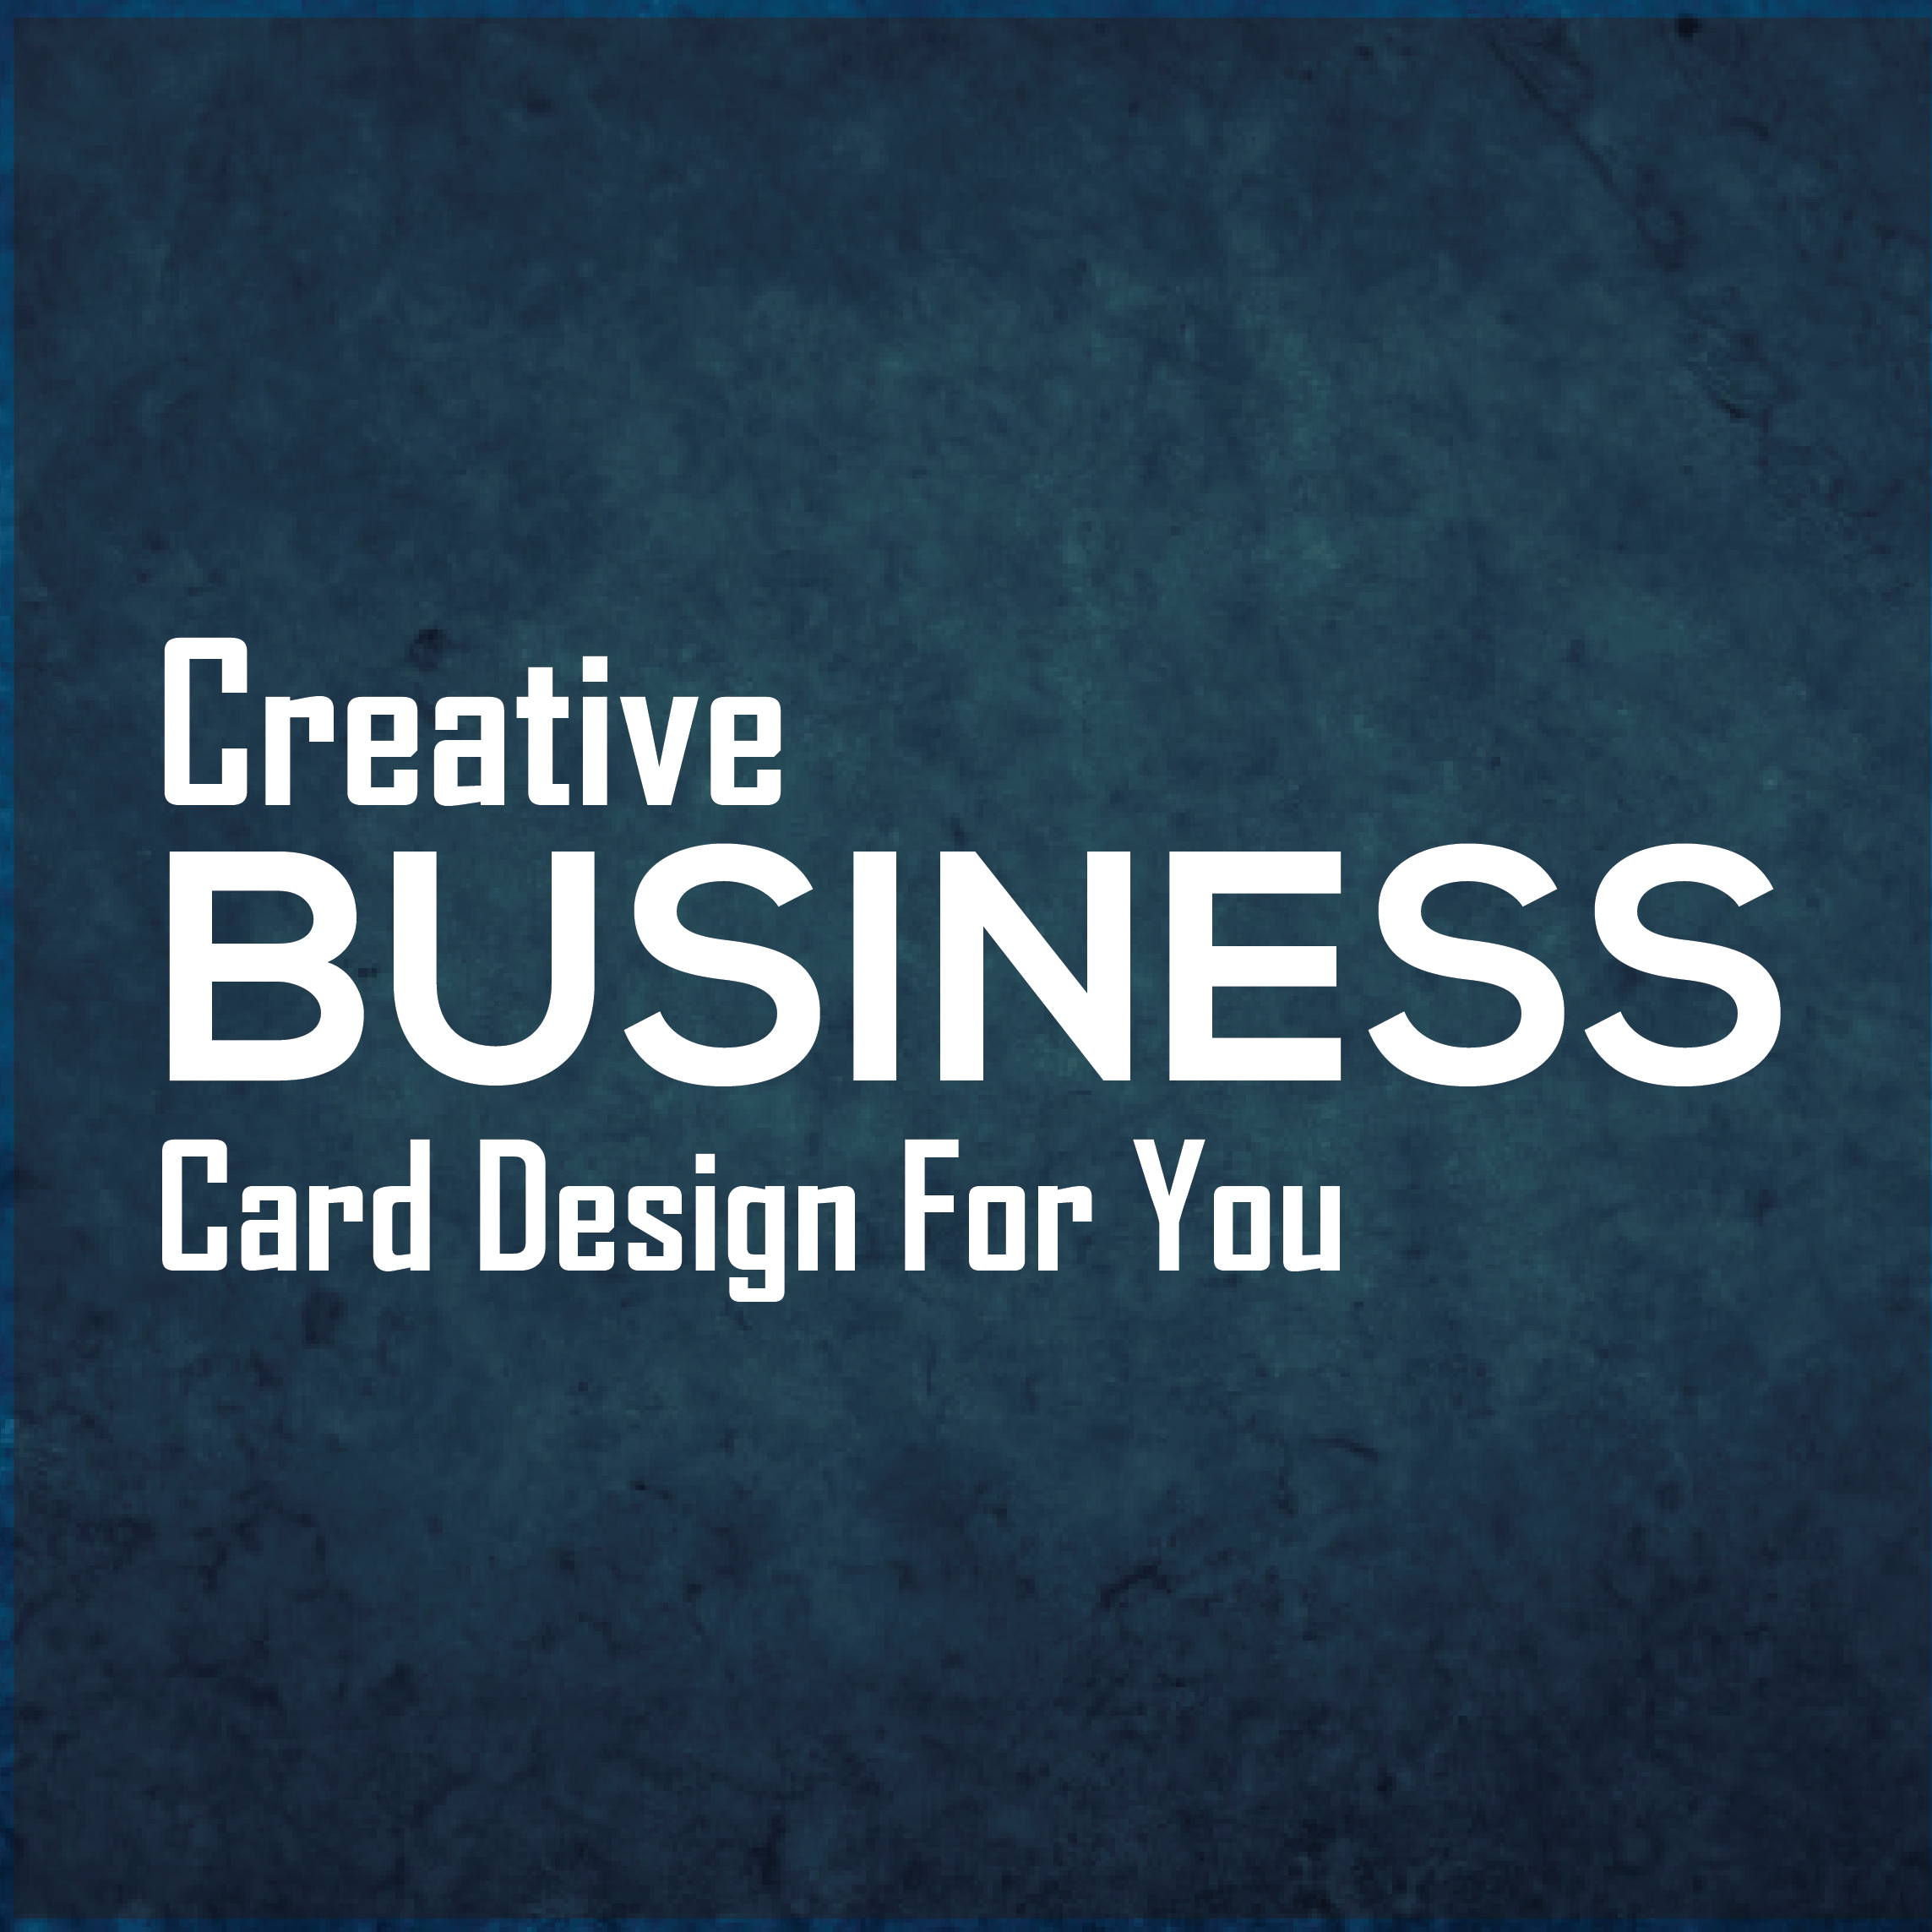 I will design attractive business card for your business